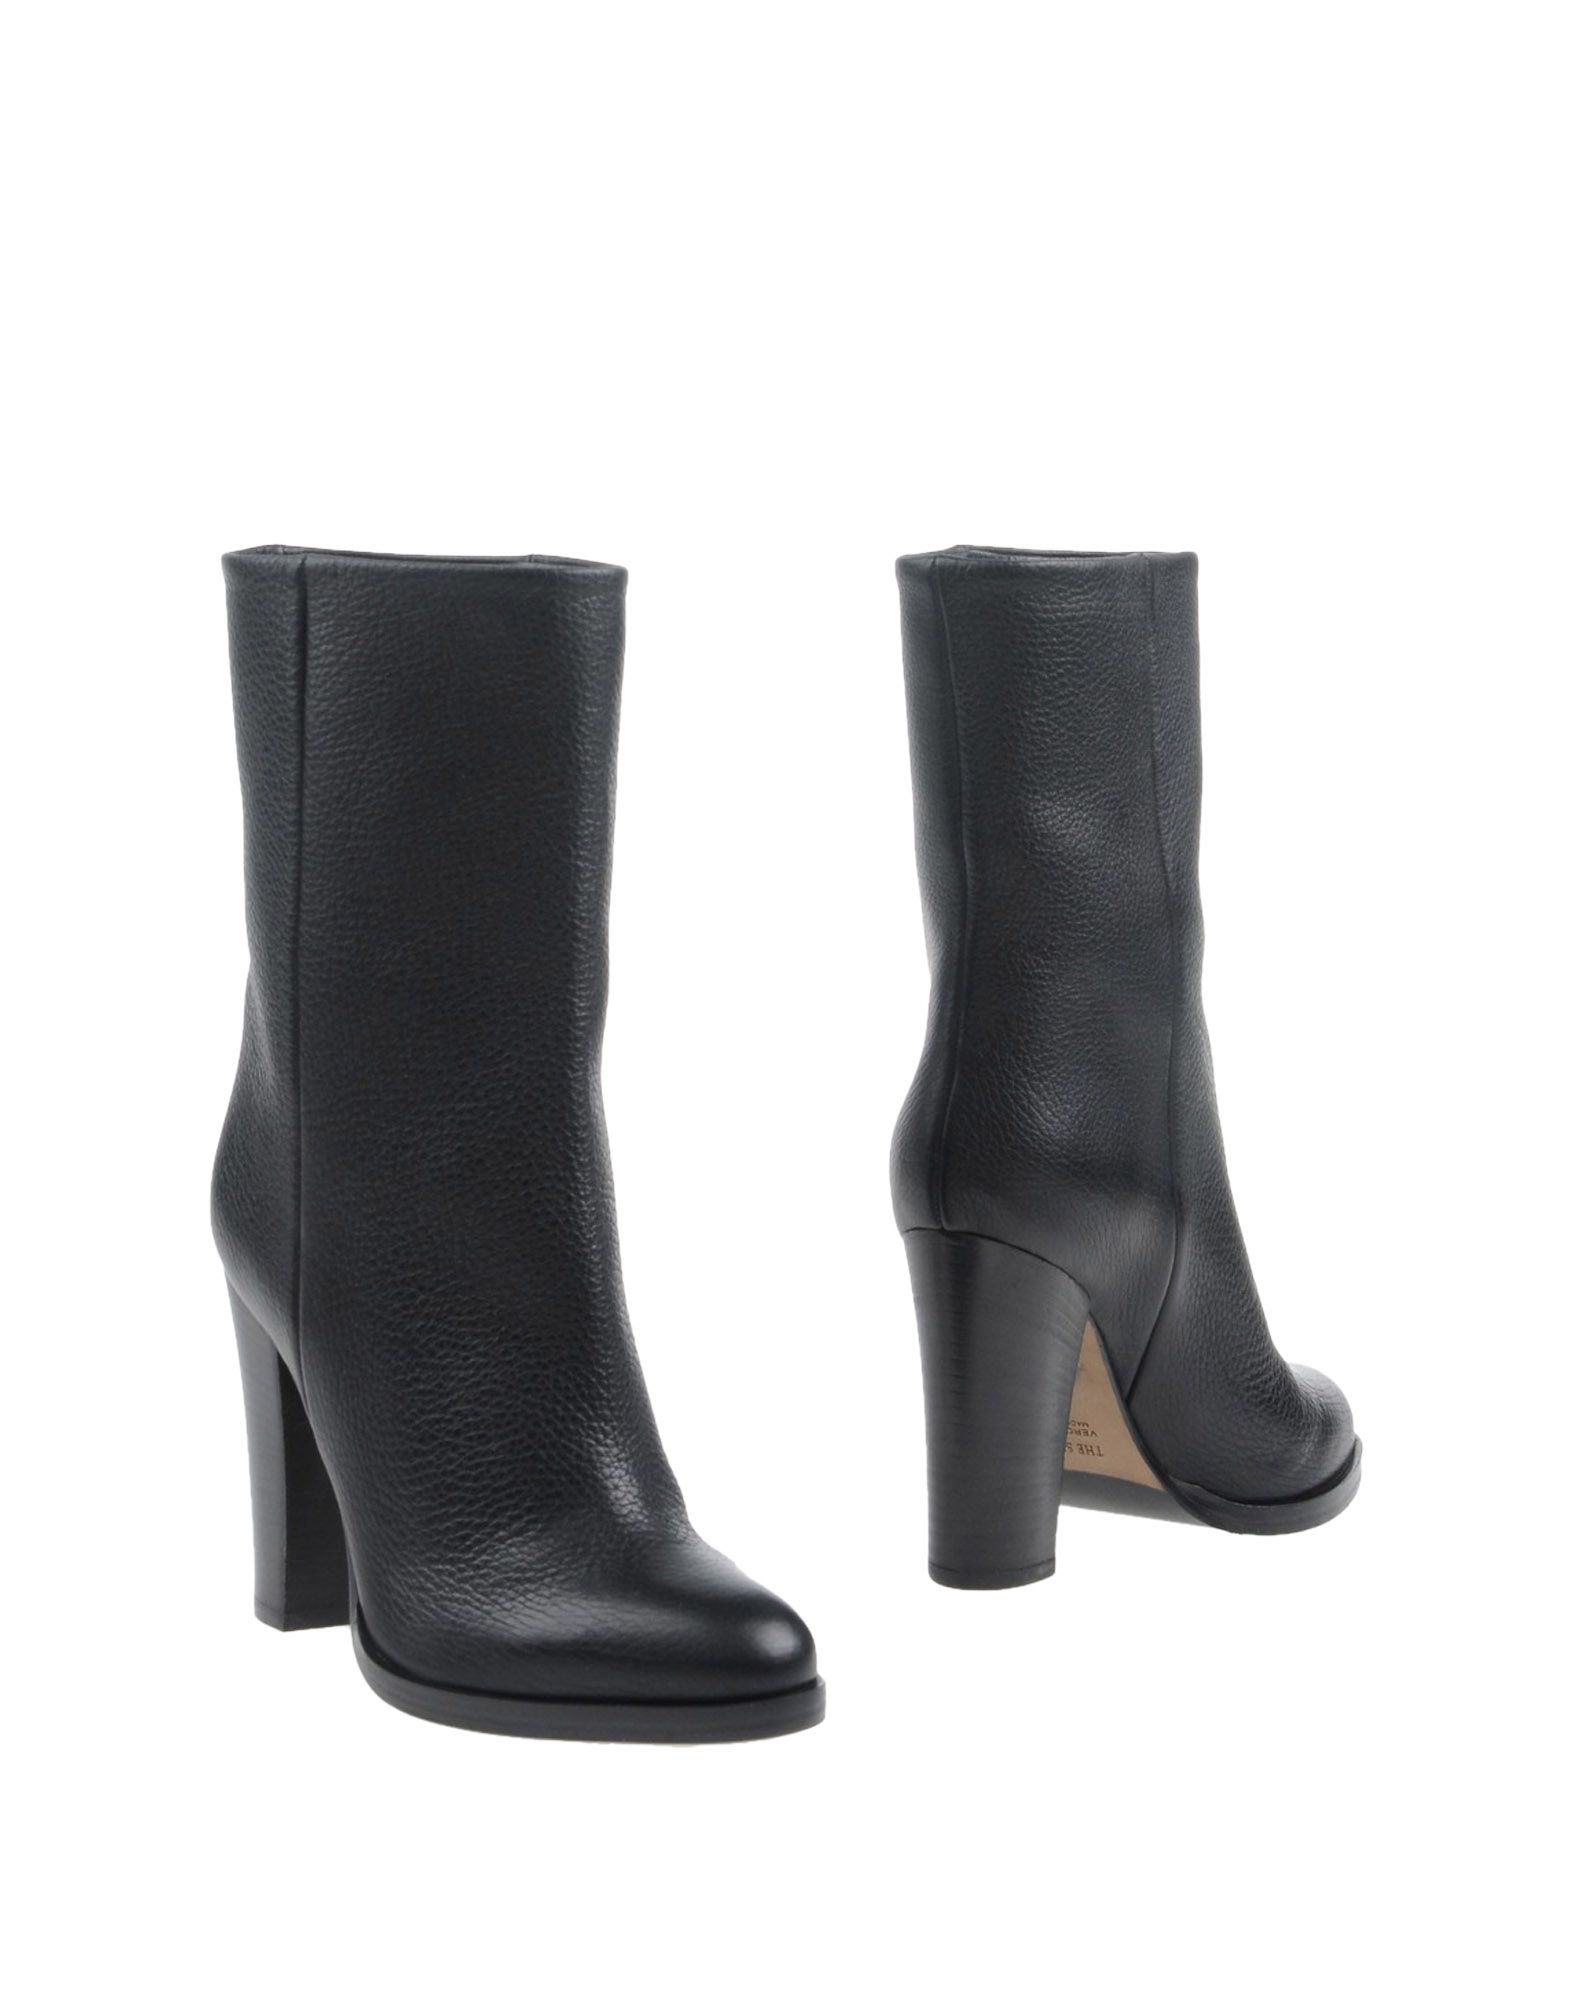 Stilvolle Stiefelette billige Schuhe The Seller Stiefelette Stilvolle Damen  11231856PQ 366e67